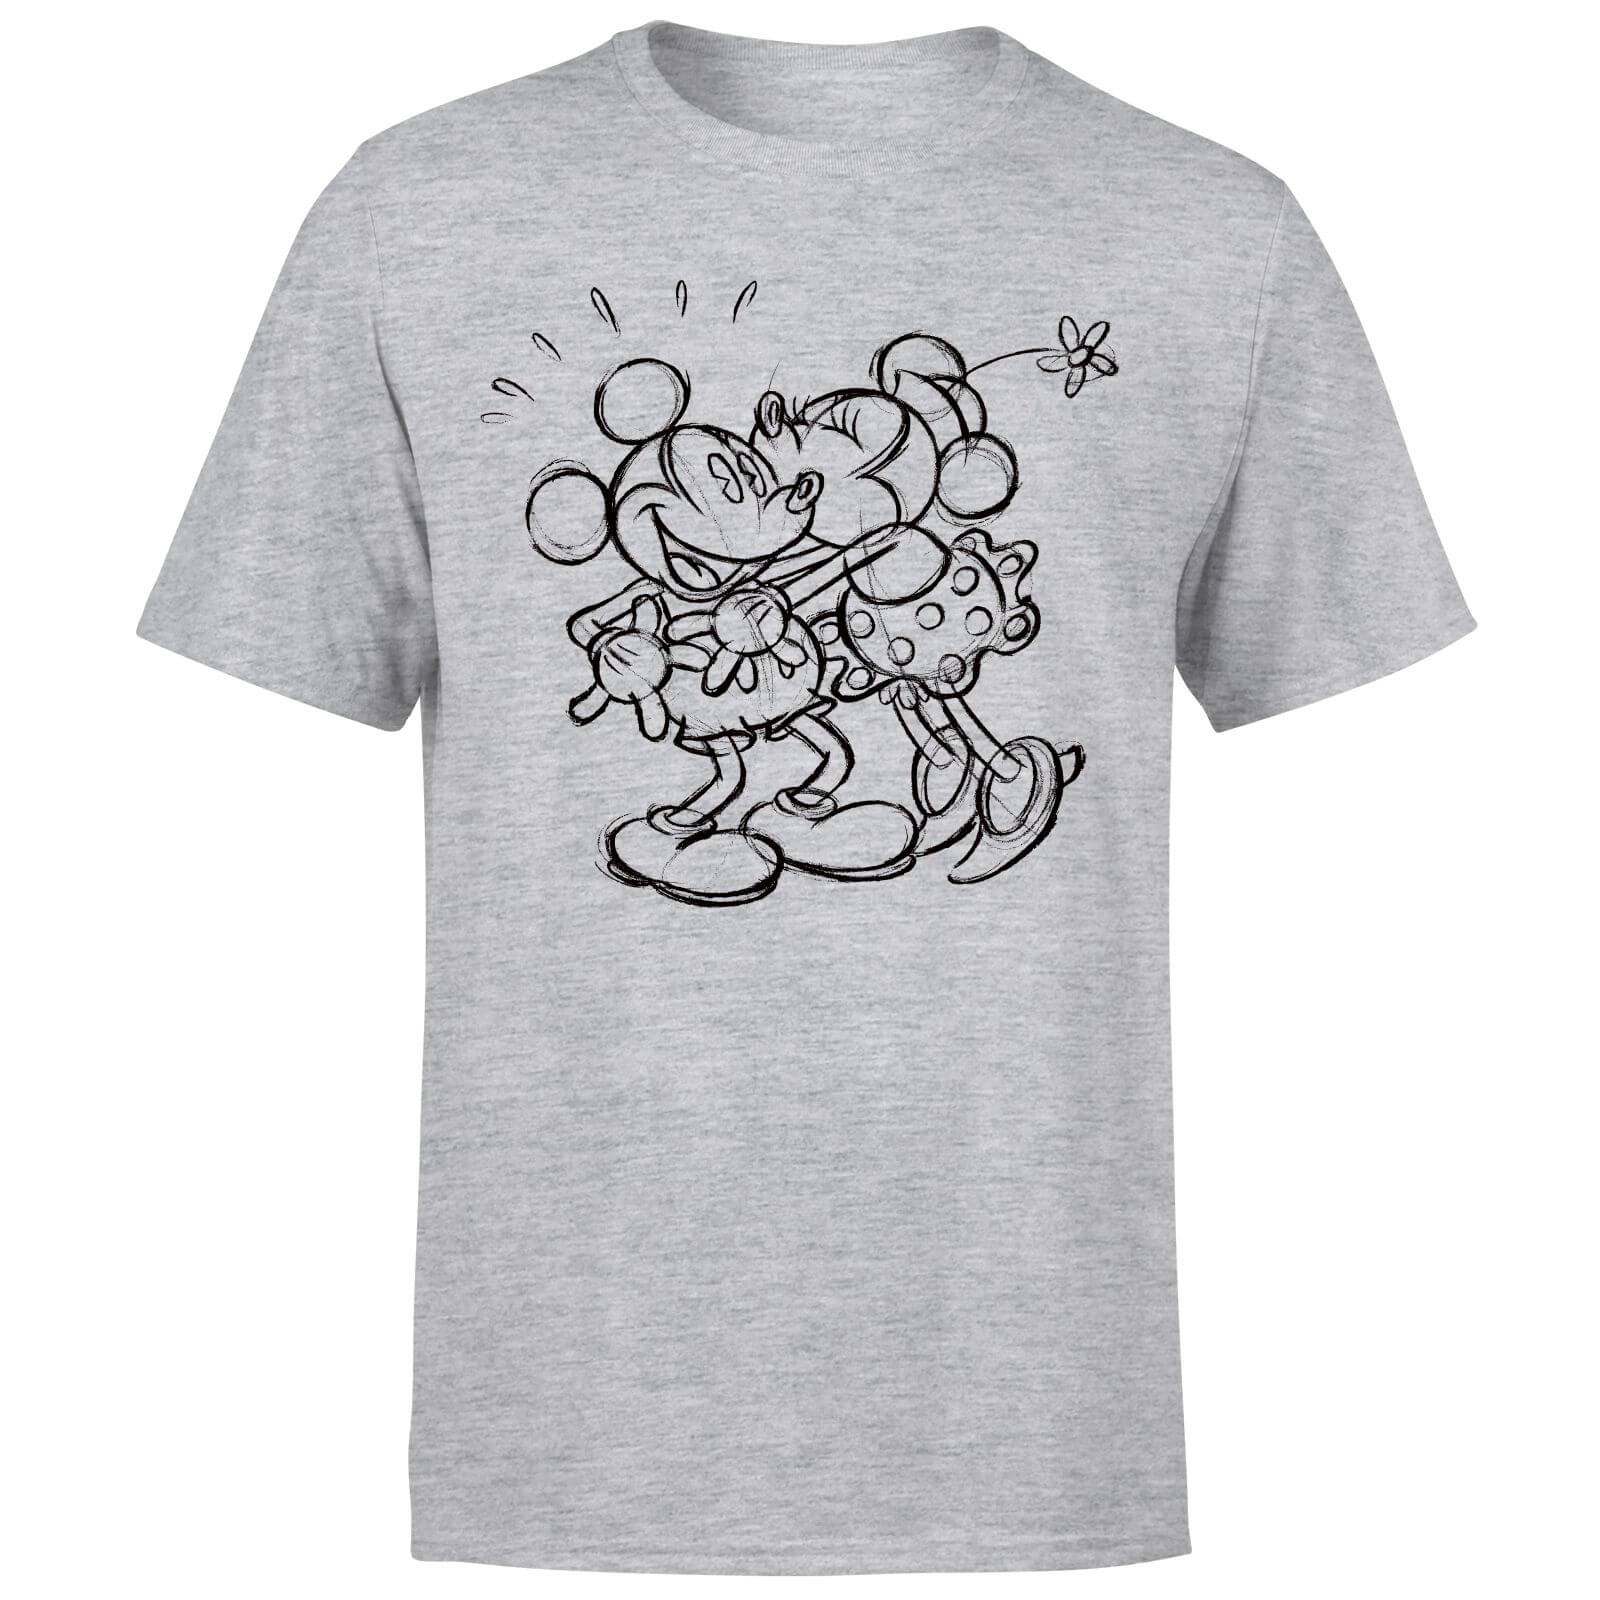 Disney Mickey Mouse Kissing Sketch T-Shirt - Grey